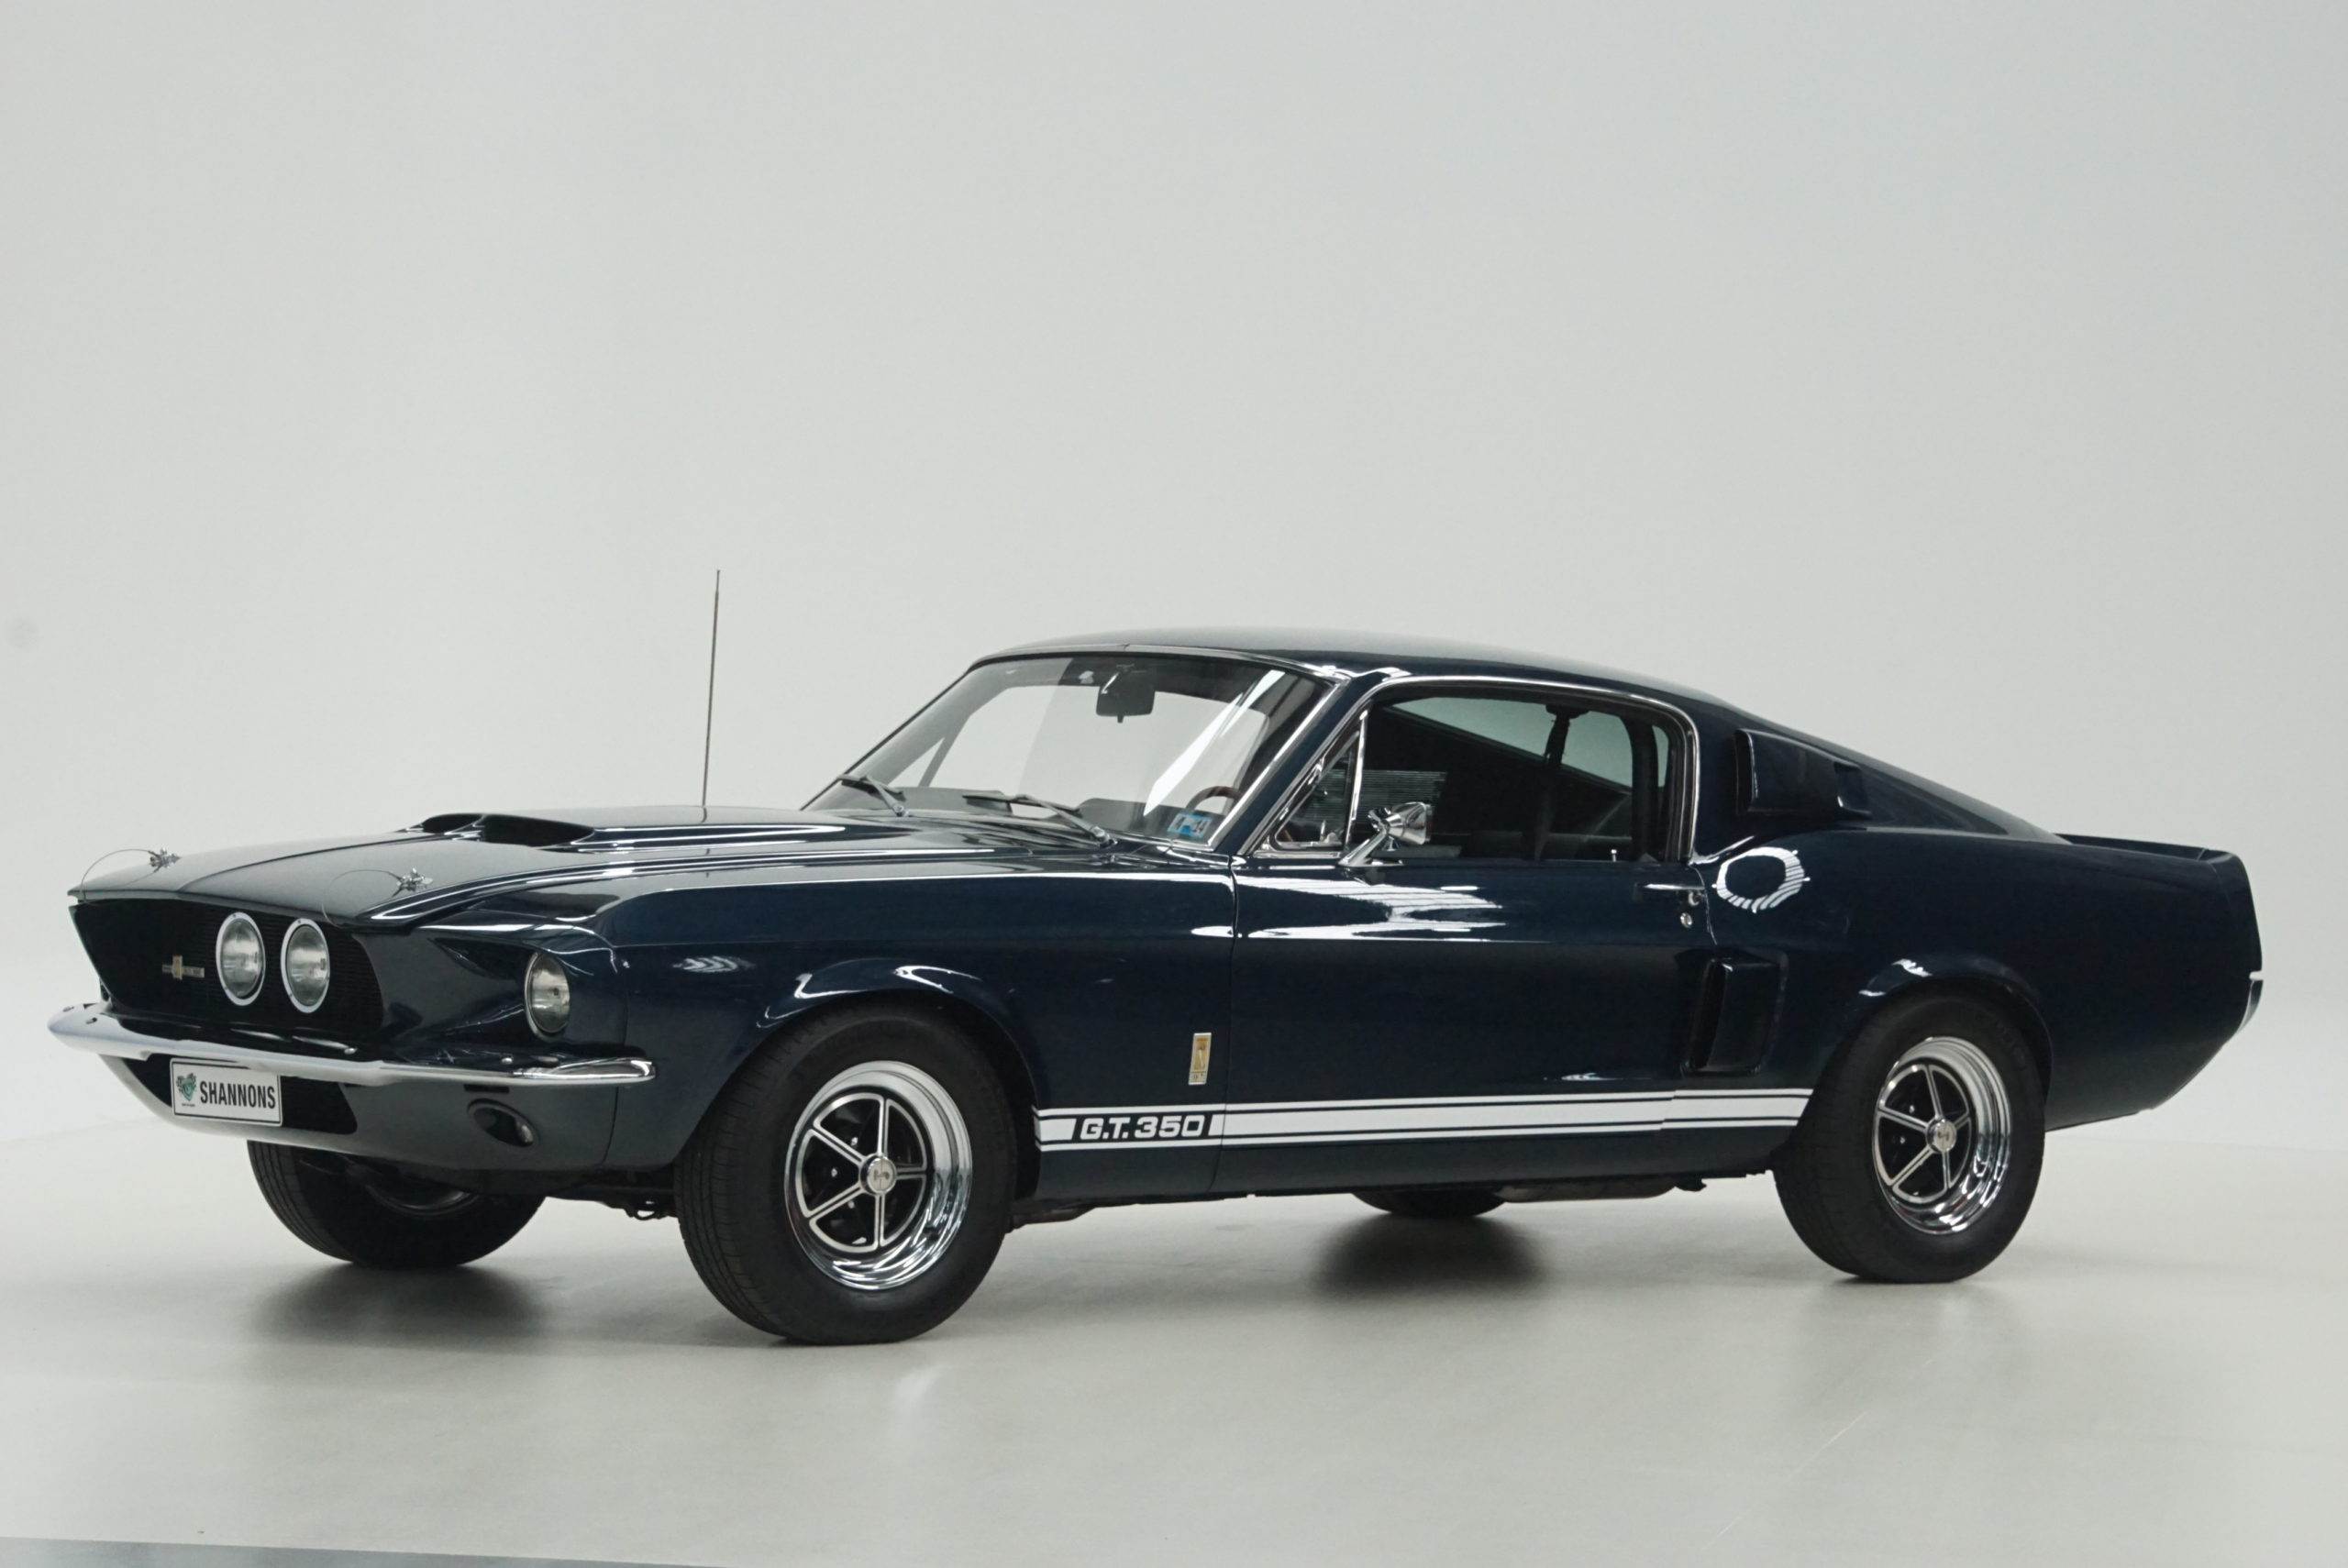 1967 Shelby Mustang GT350 Fastback latéral trois quarts avant gauche - Shannons Auctions avril 2021.